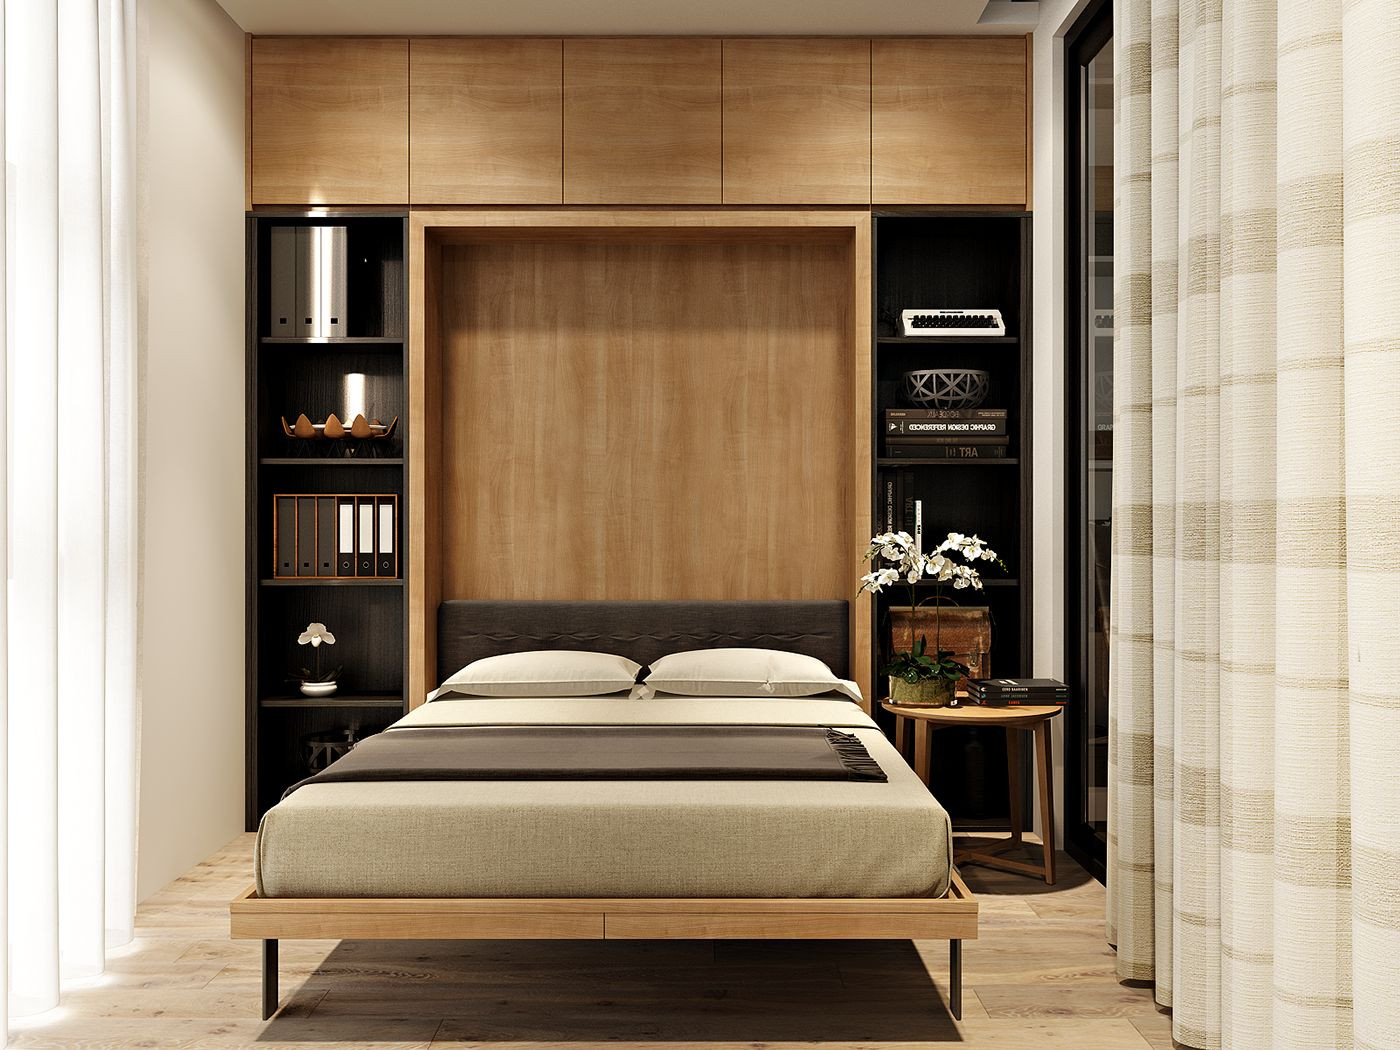 Best ideas about Small Bedroom Design . Save or Pin Sophisticated Small Bedroom Designs Now.